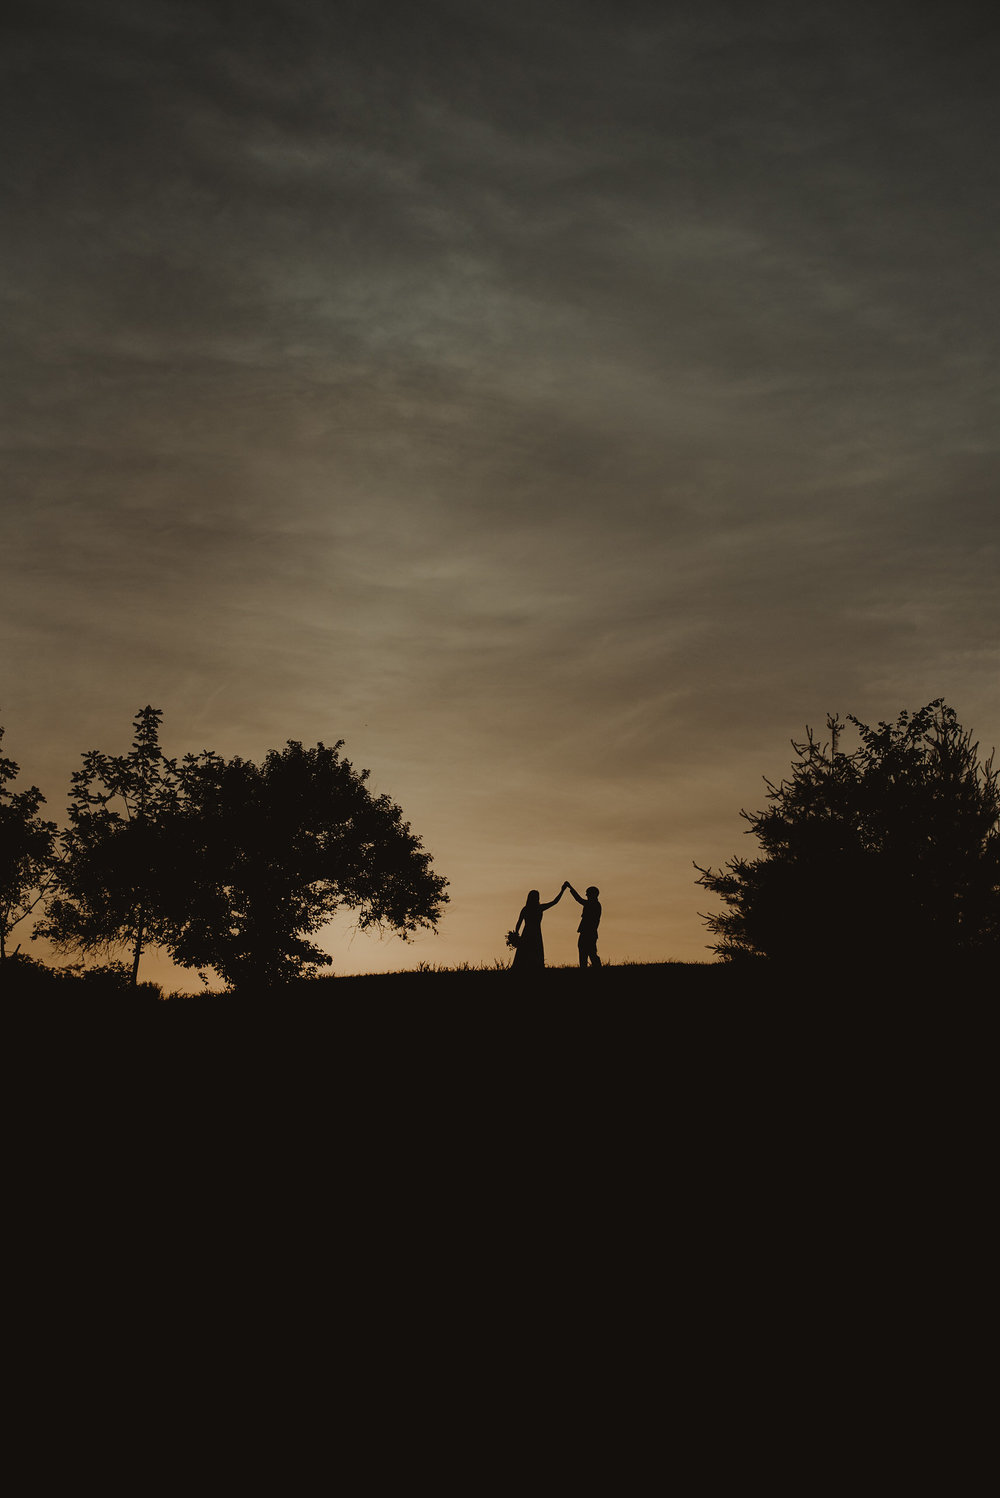 Bride and groom on a hill at night